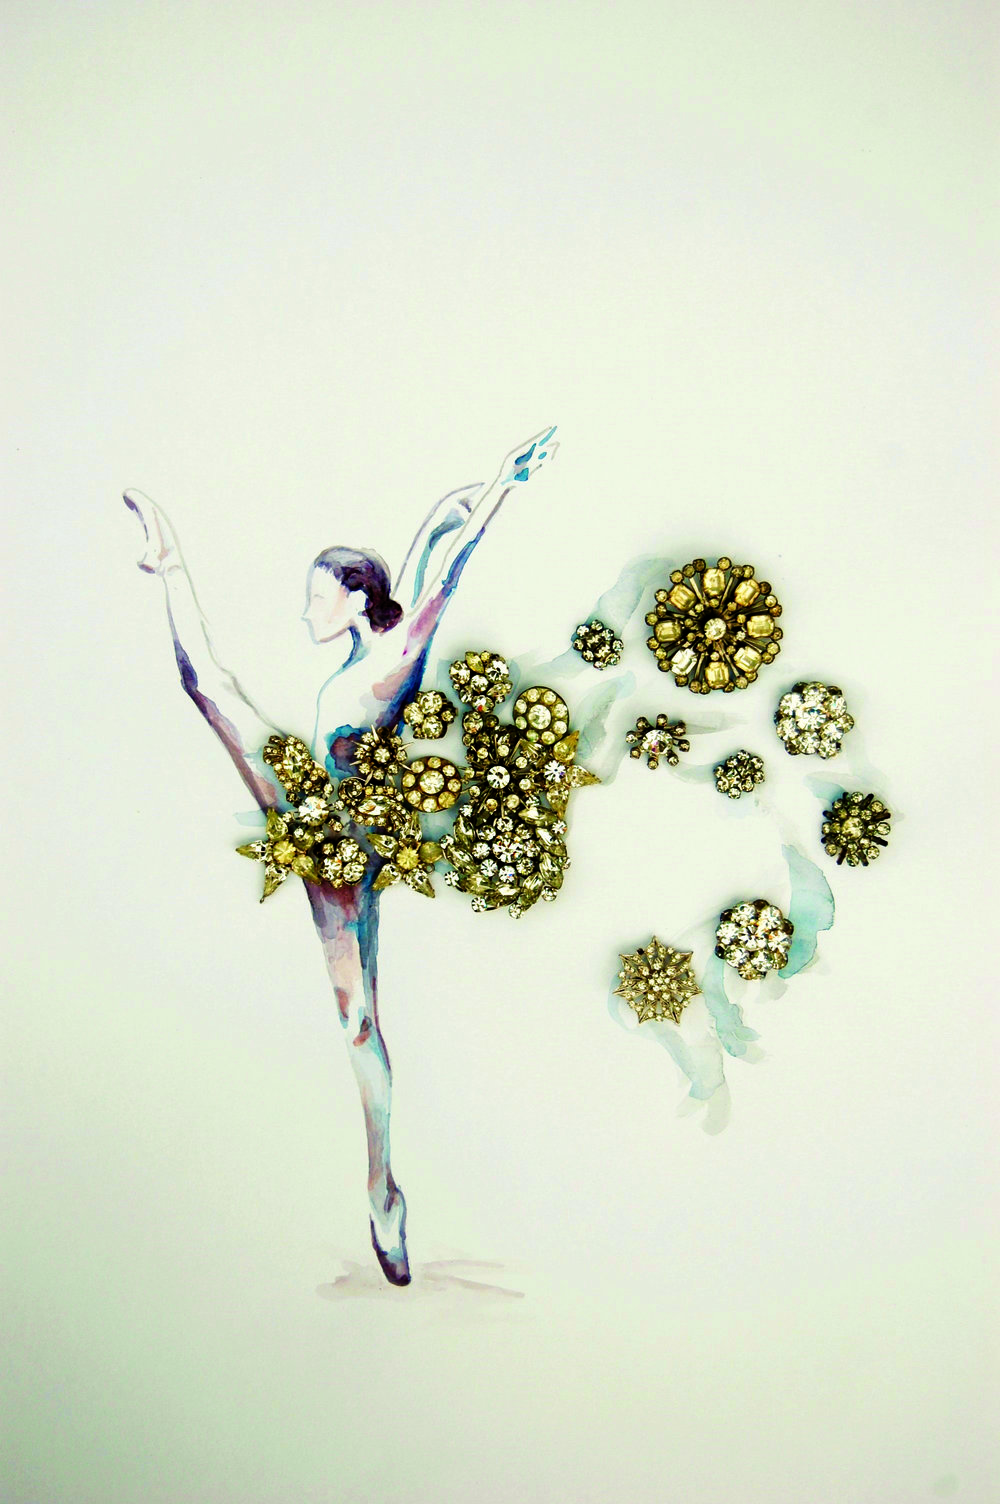 One creation in the Ballet Des Moines artist-in-residence series by artist Christine Hilbert